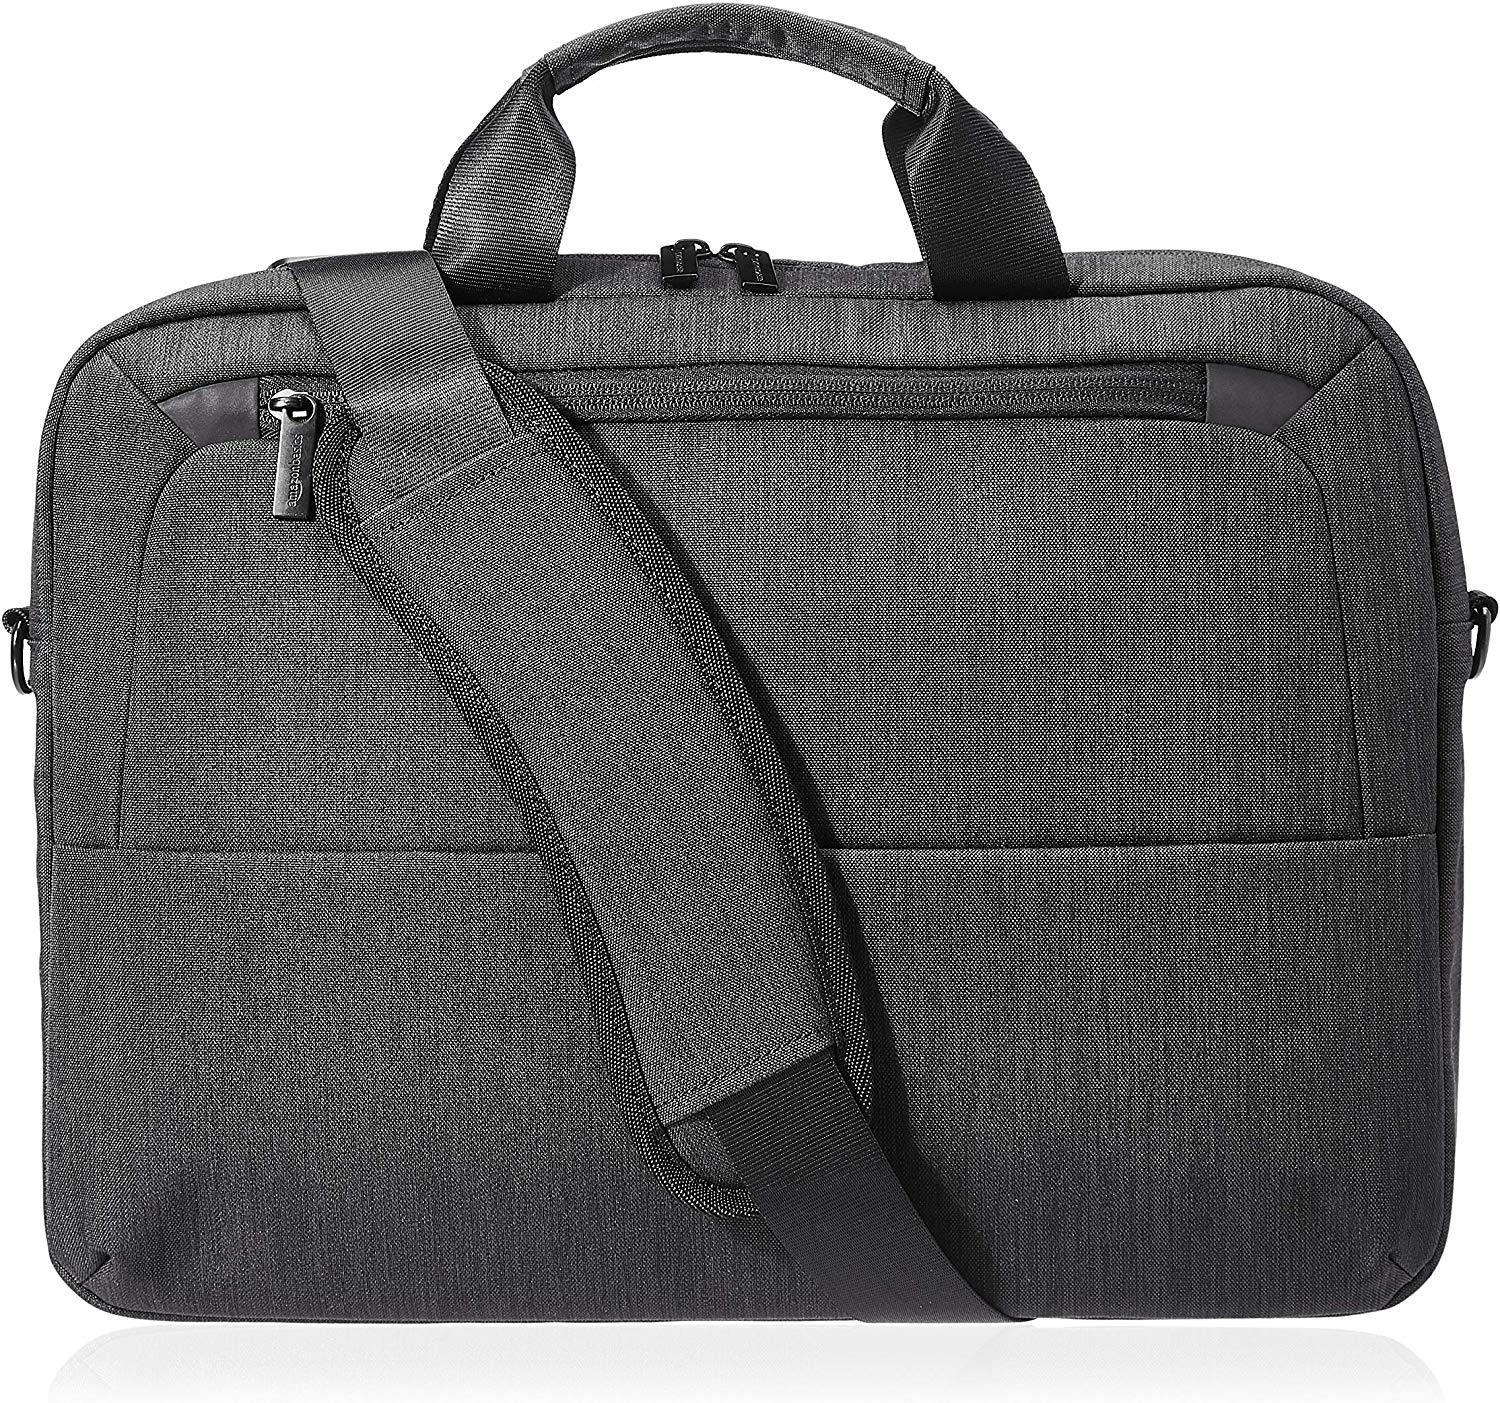 Laptop Tasche amazonBasics